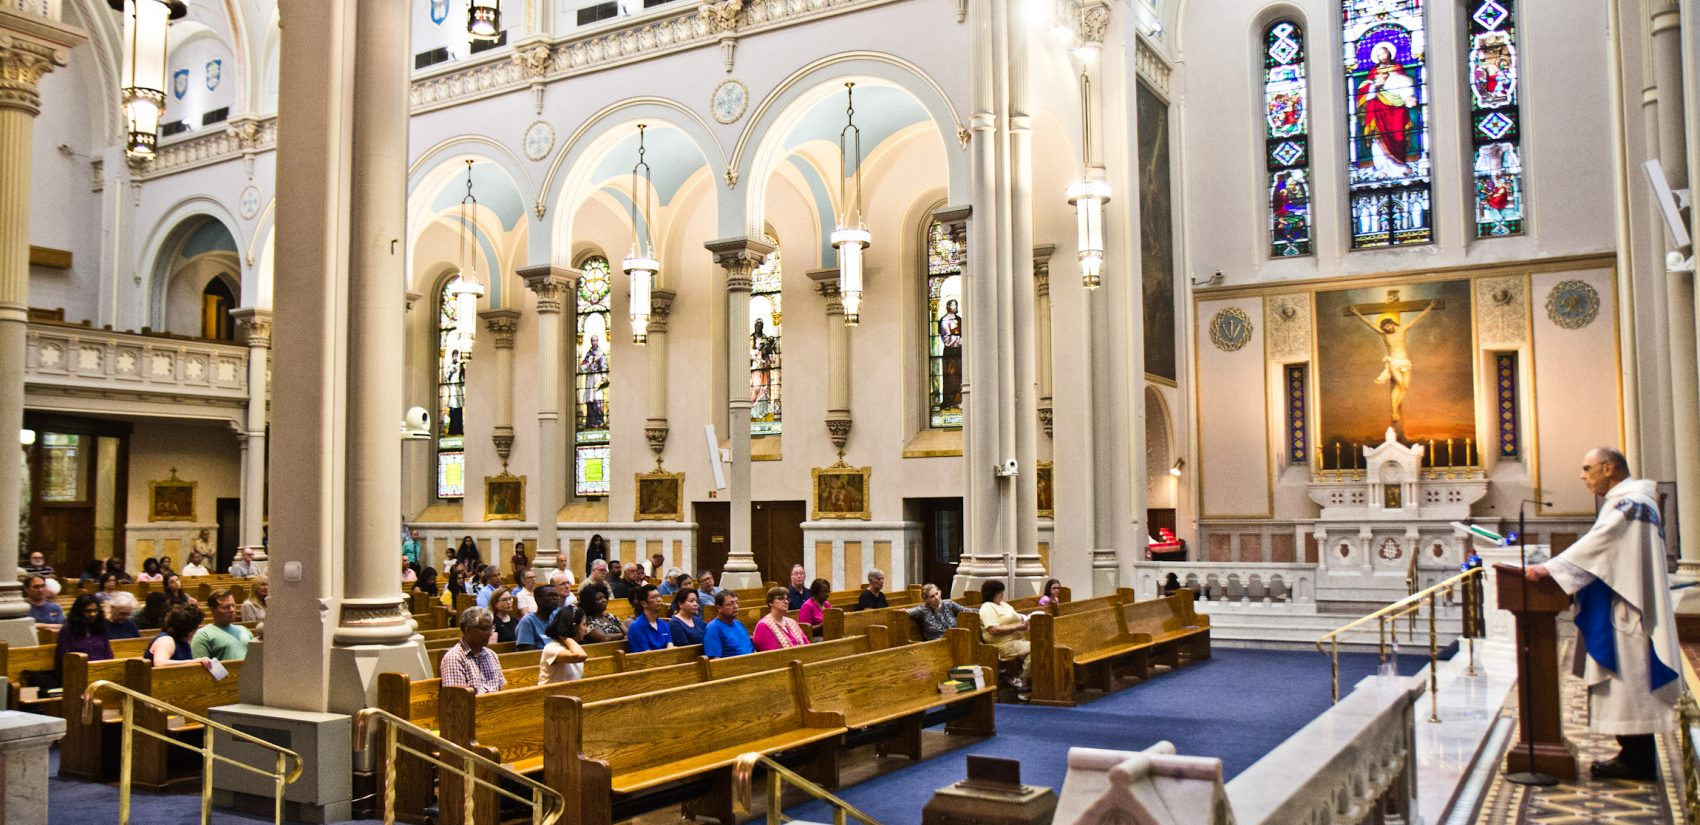 Monday service at the The Miraculous Medal Shrine in the Germantown section of Philadelphia. (Kimberly Paynter/WHYY)